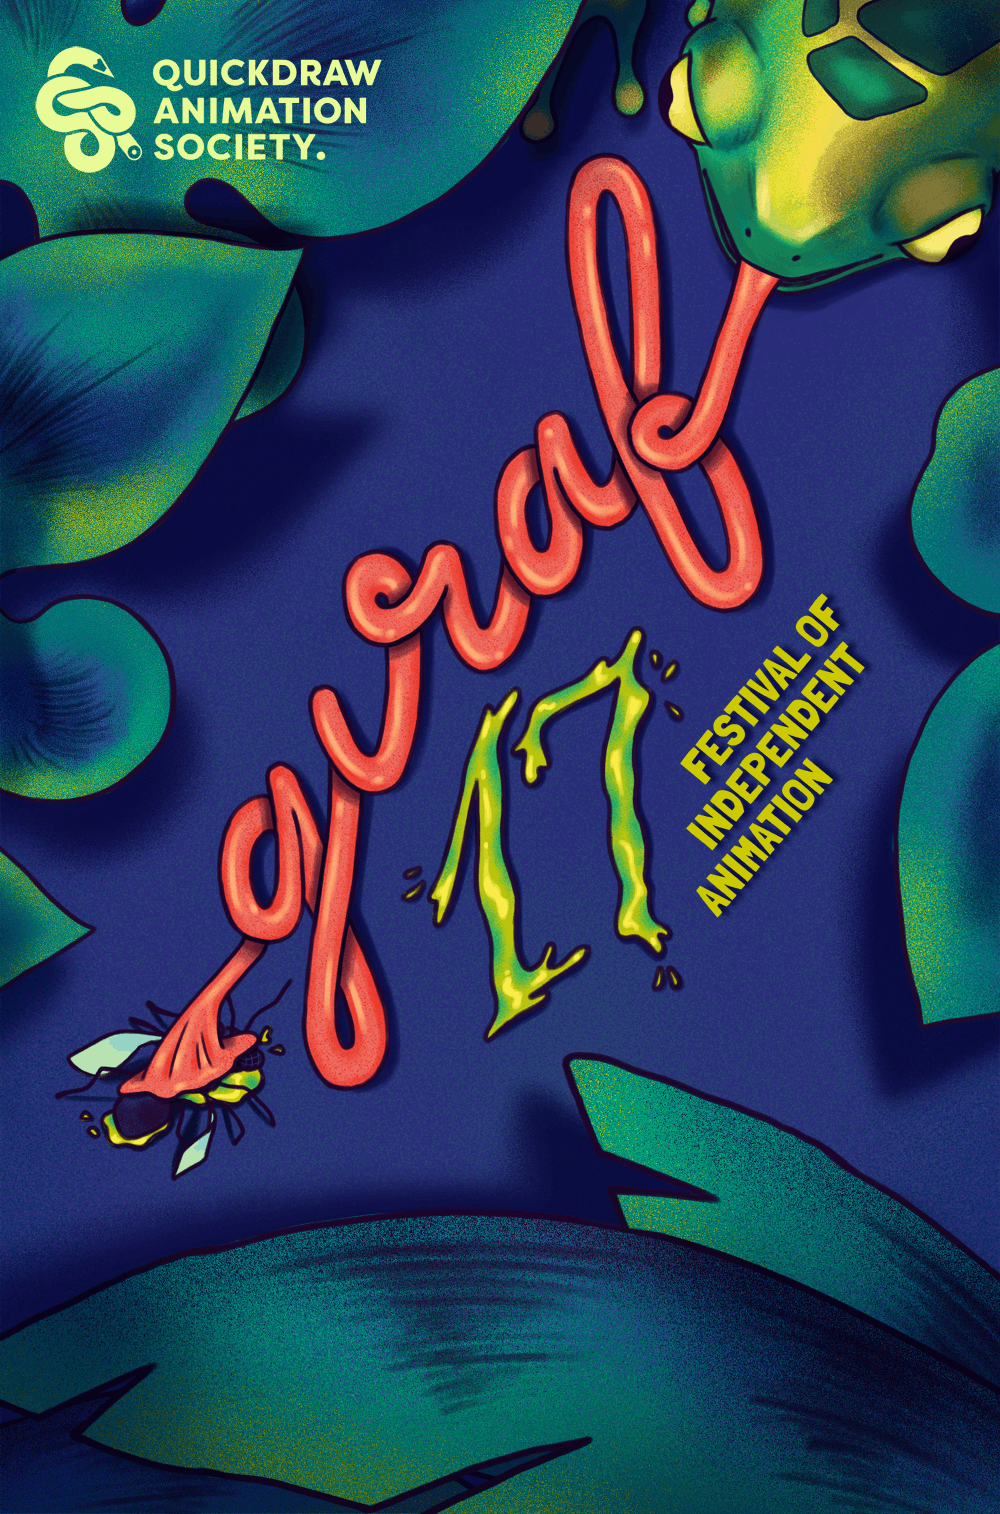 GIRAF 17 festival poster: a frog eats a fly, its tongue twists to spell out the word GIRAF